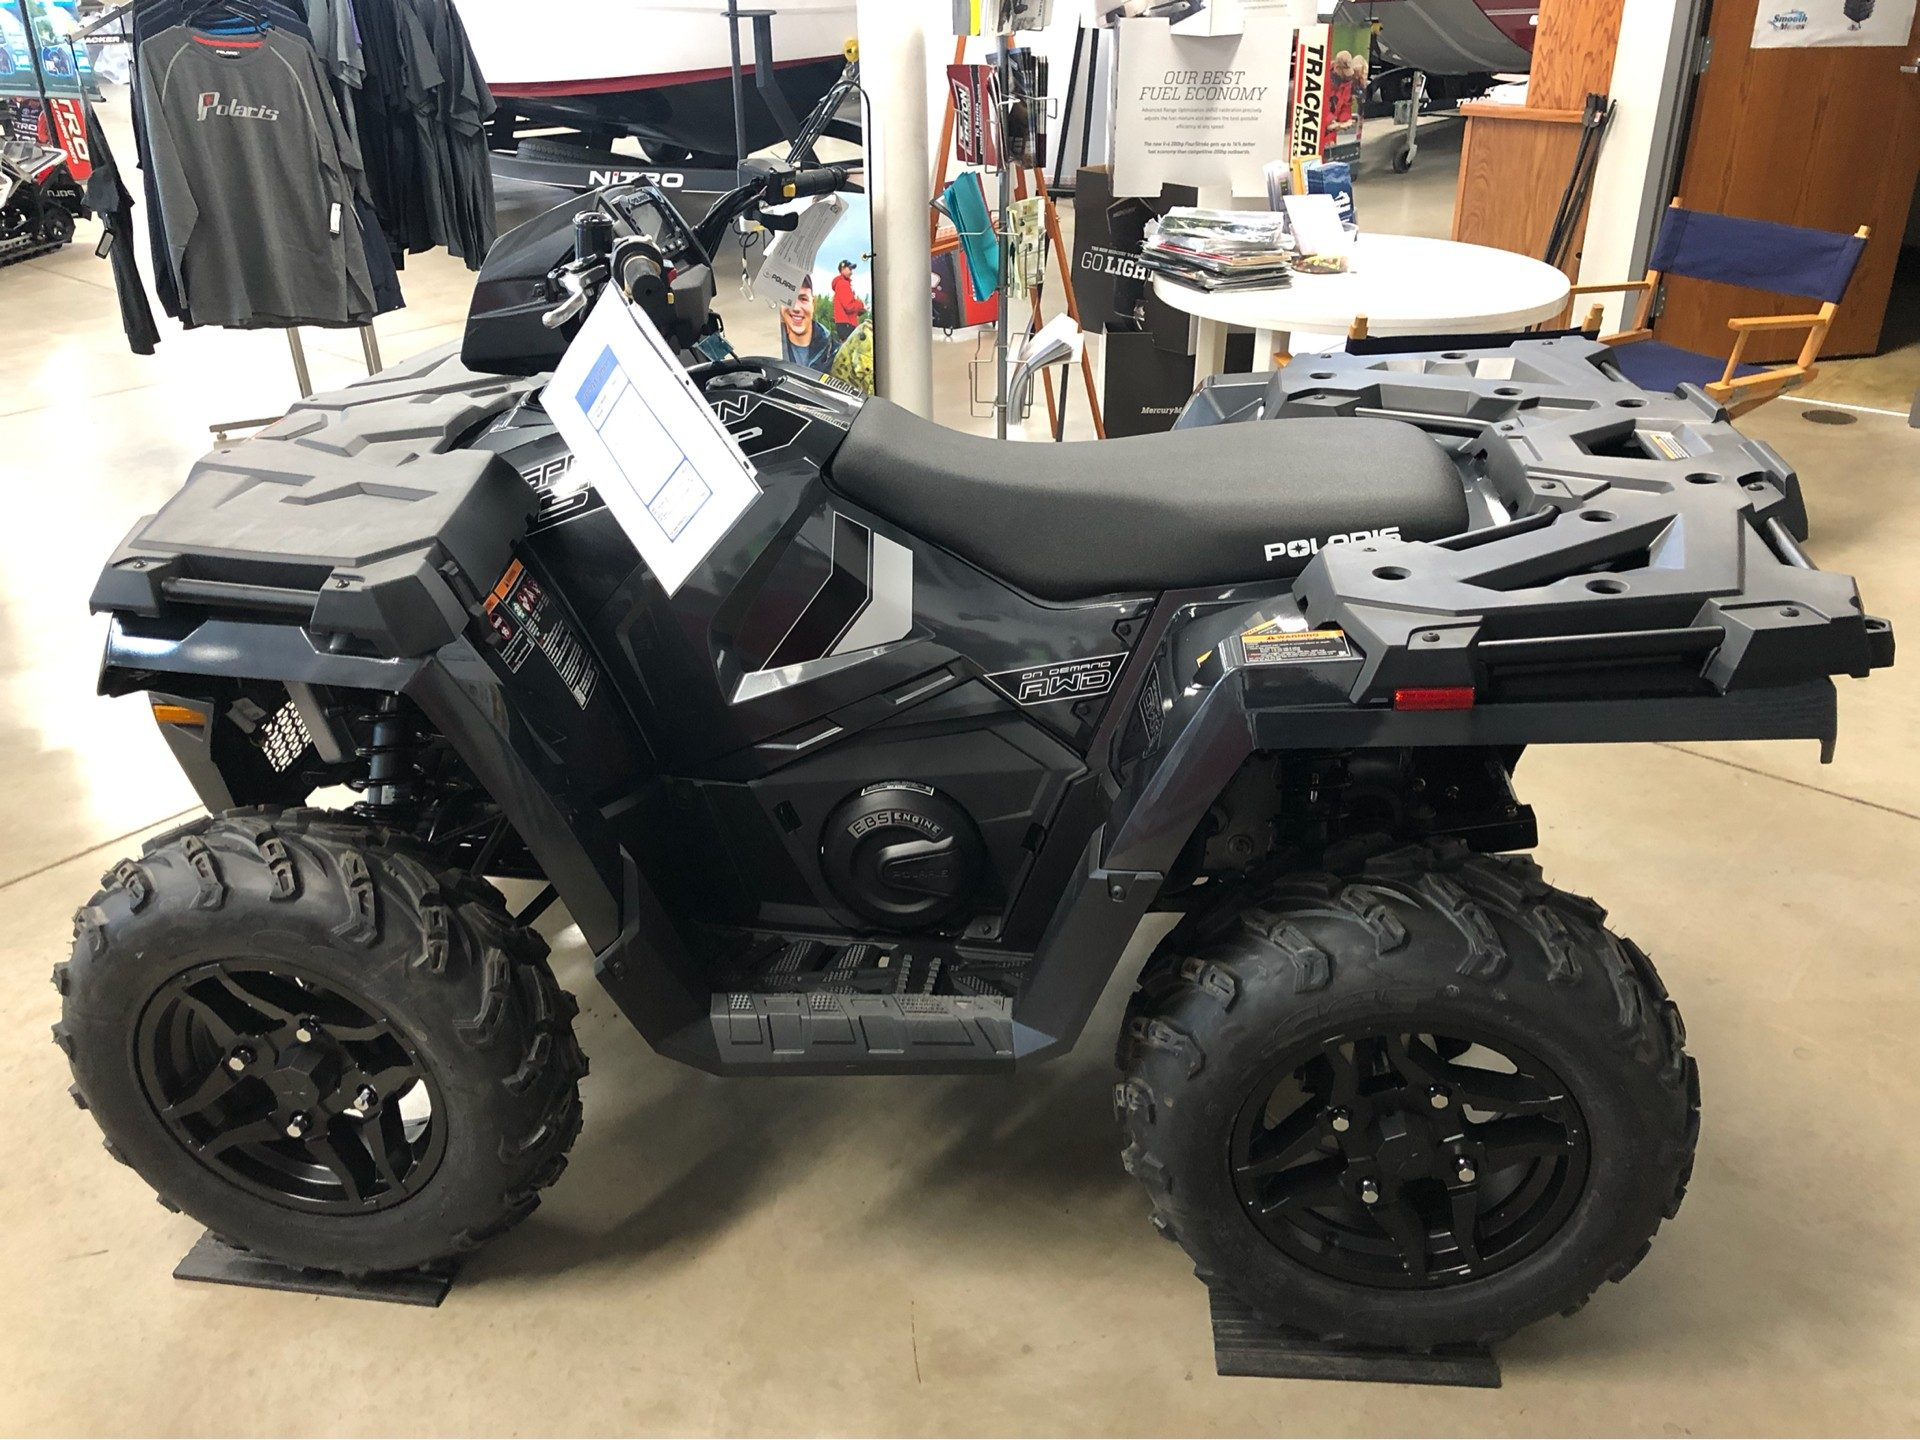 2019 Polaris Sportsman 570 SP in Appleton, Wisconsin - Photo 3